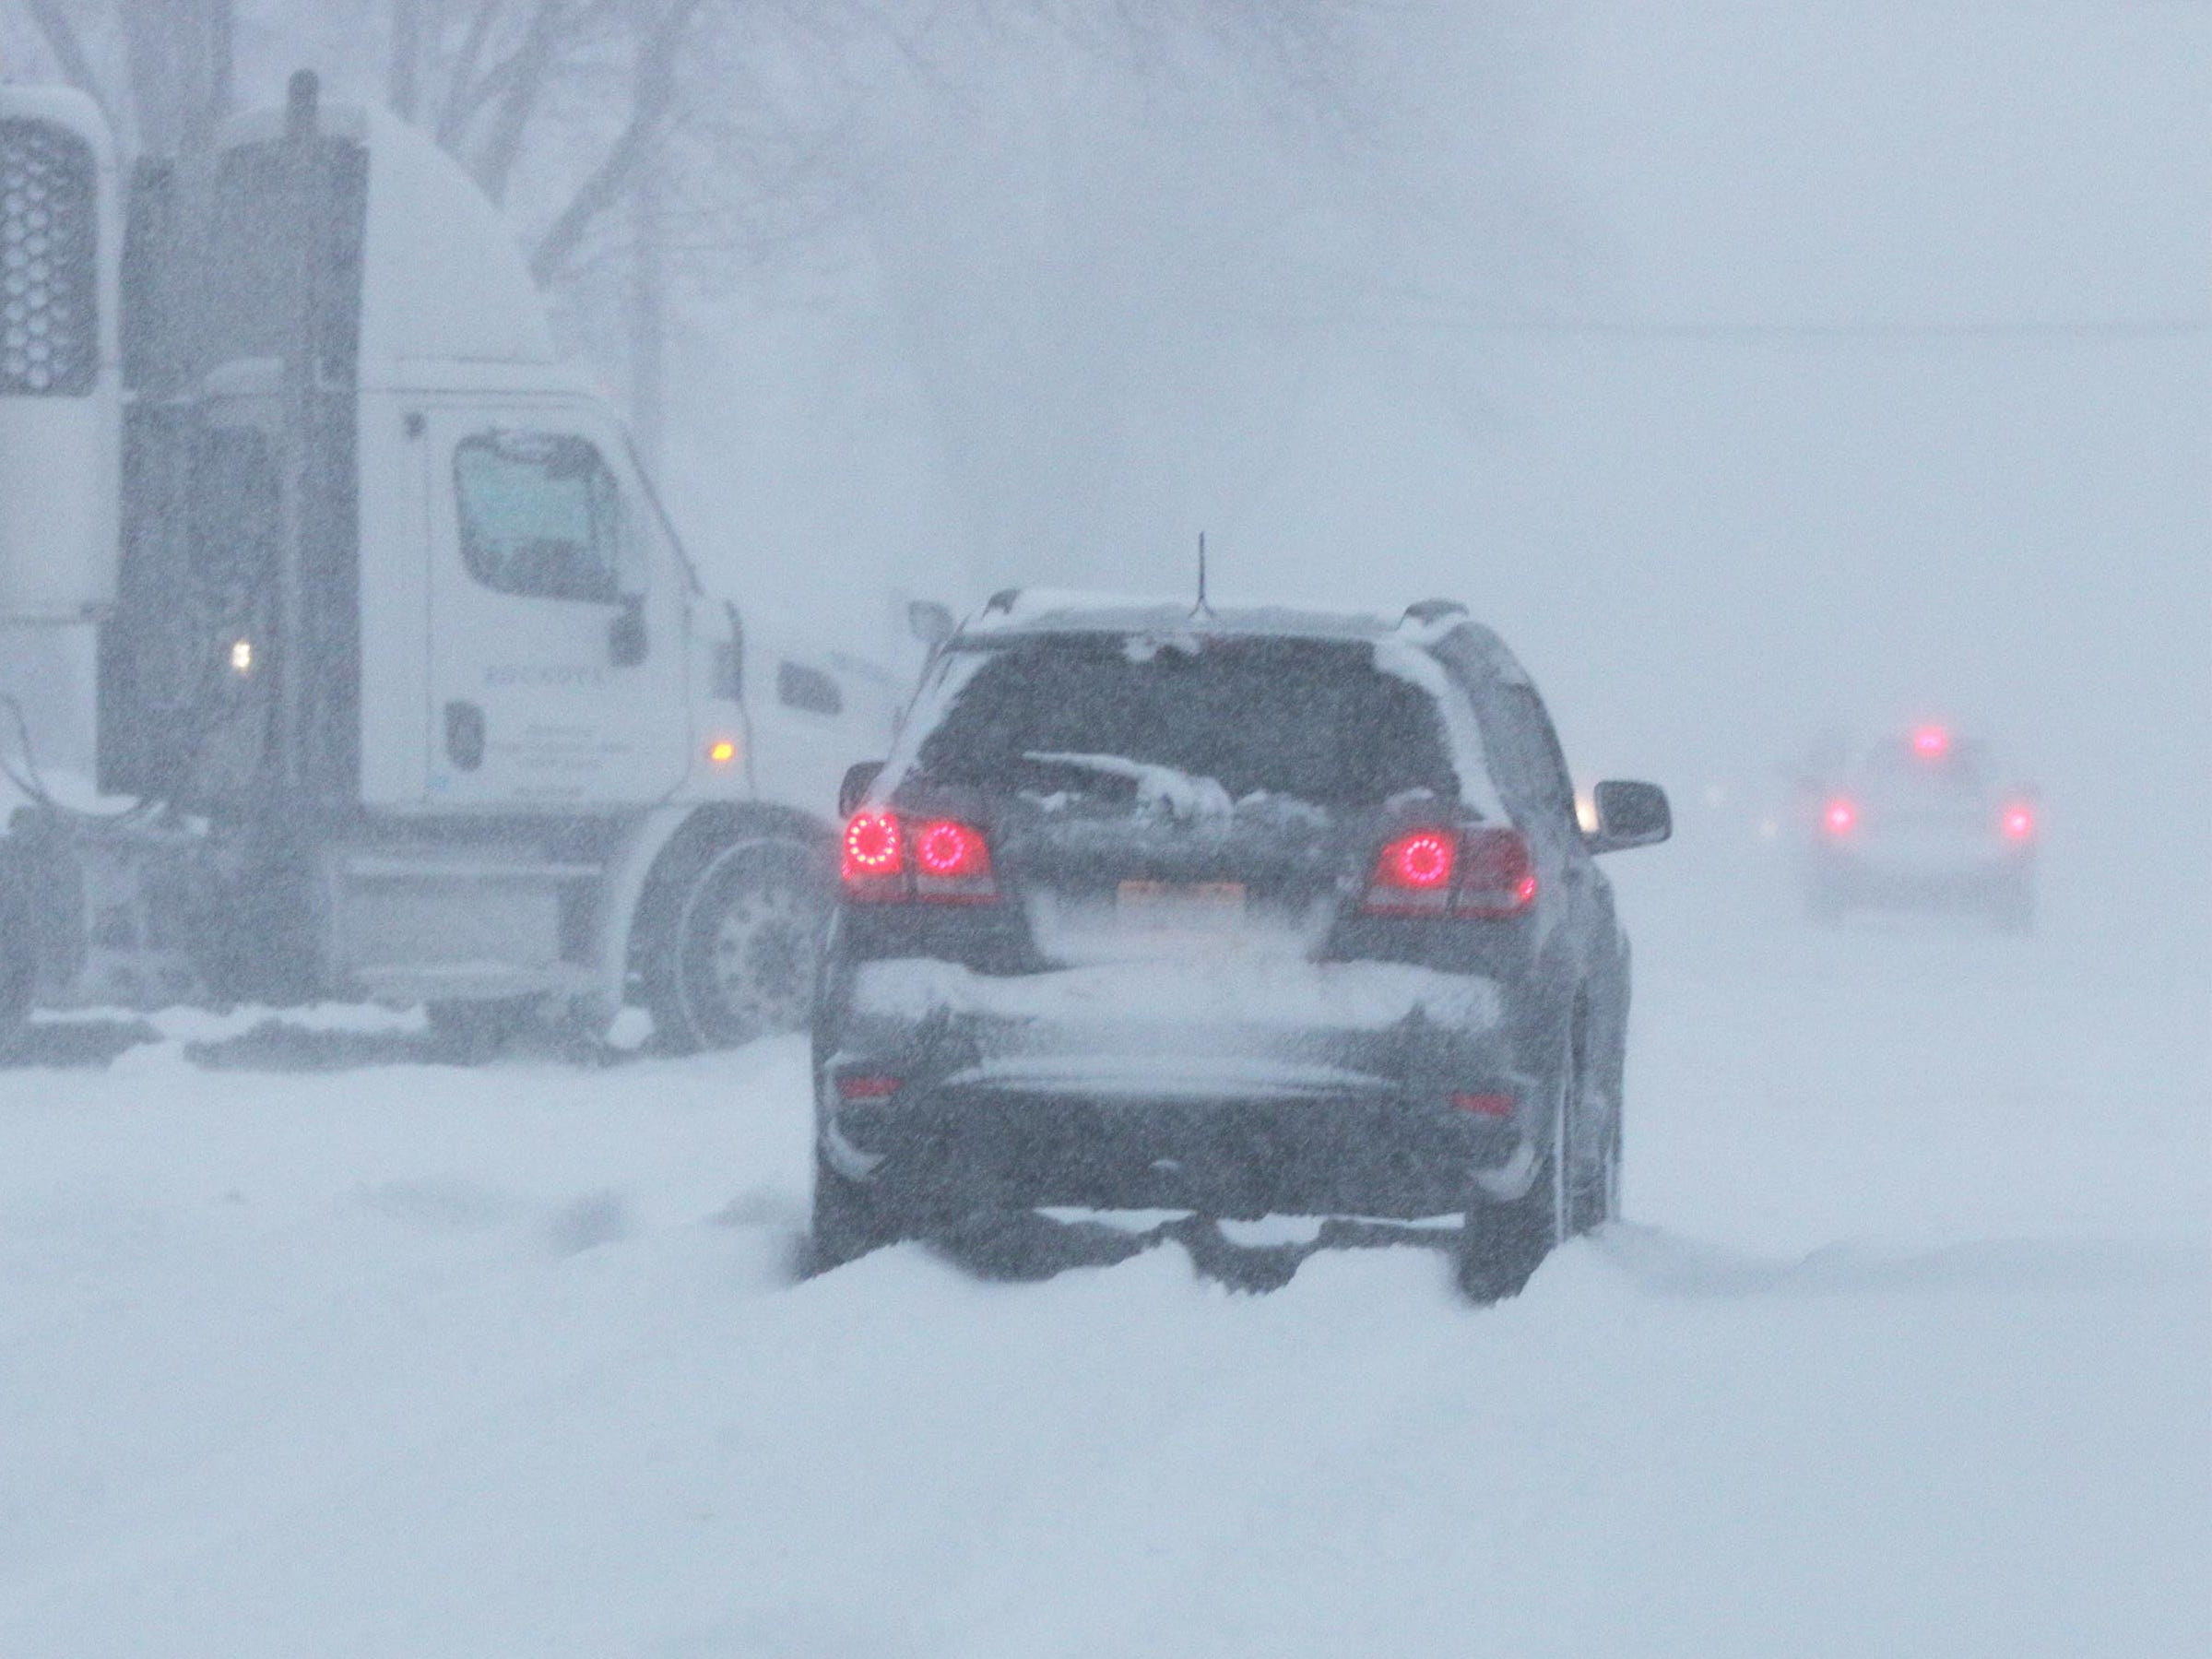 Visibility was limited on North 23rd Street by Kohler Memorial Drive, Tuesday in Sheboygan.